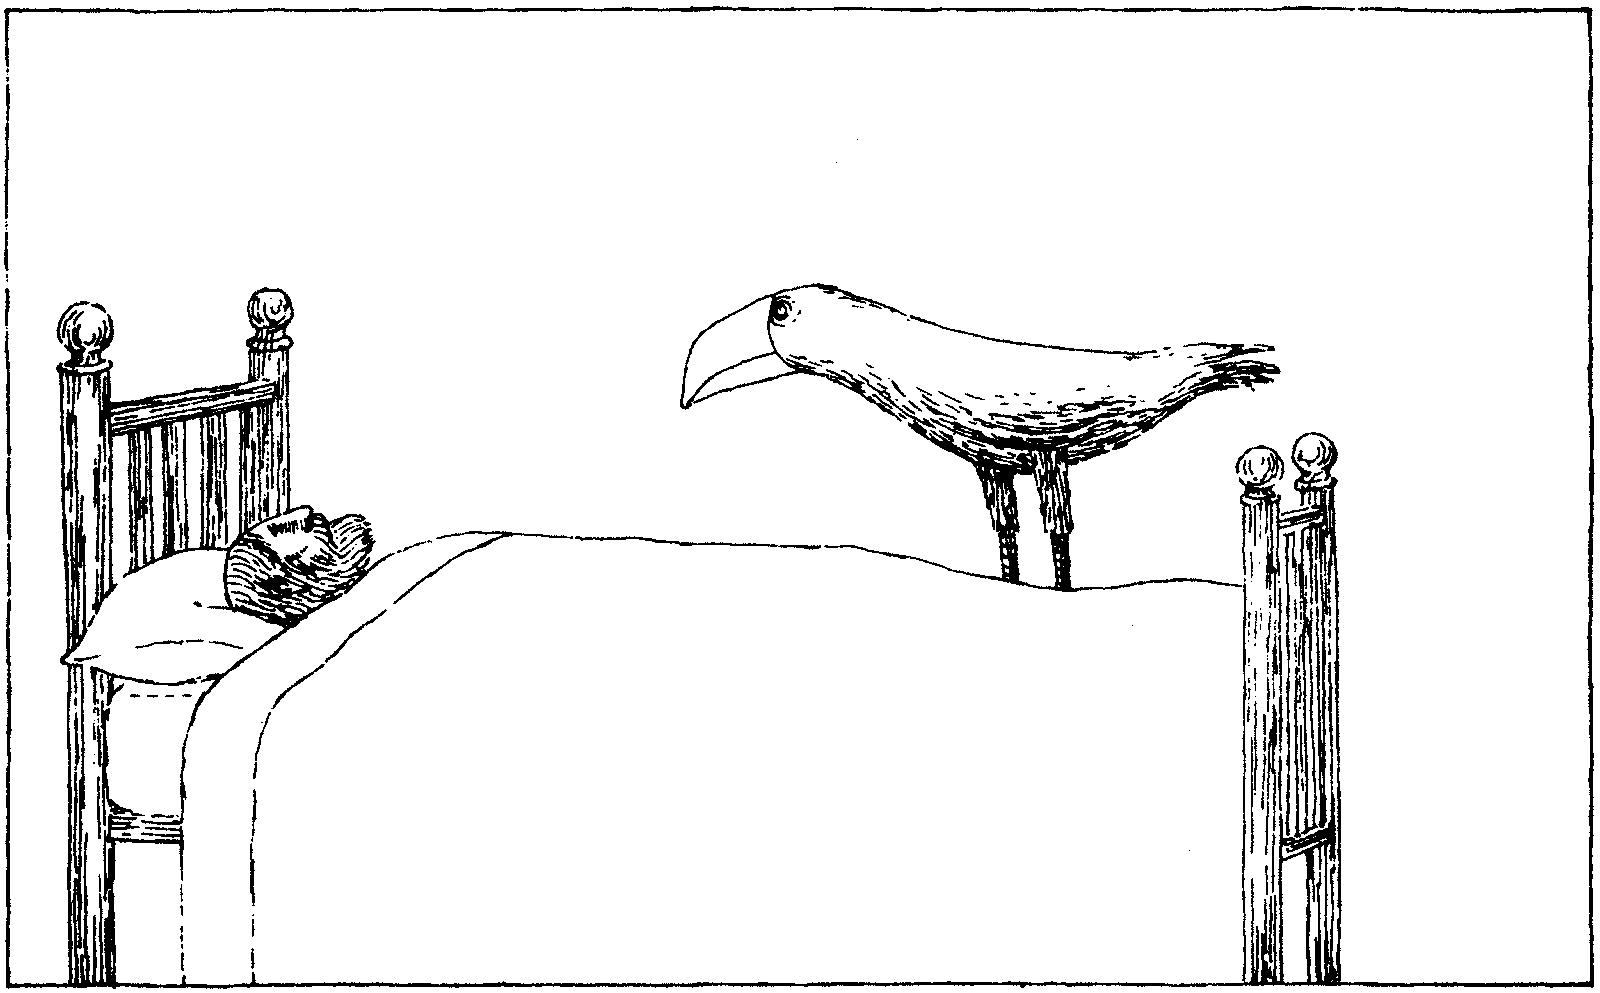 Drawing by Edward Gorey